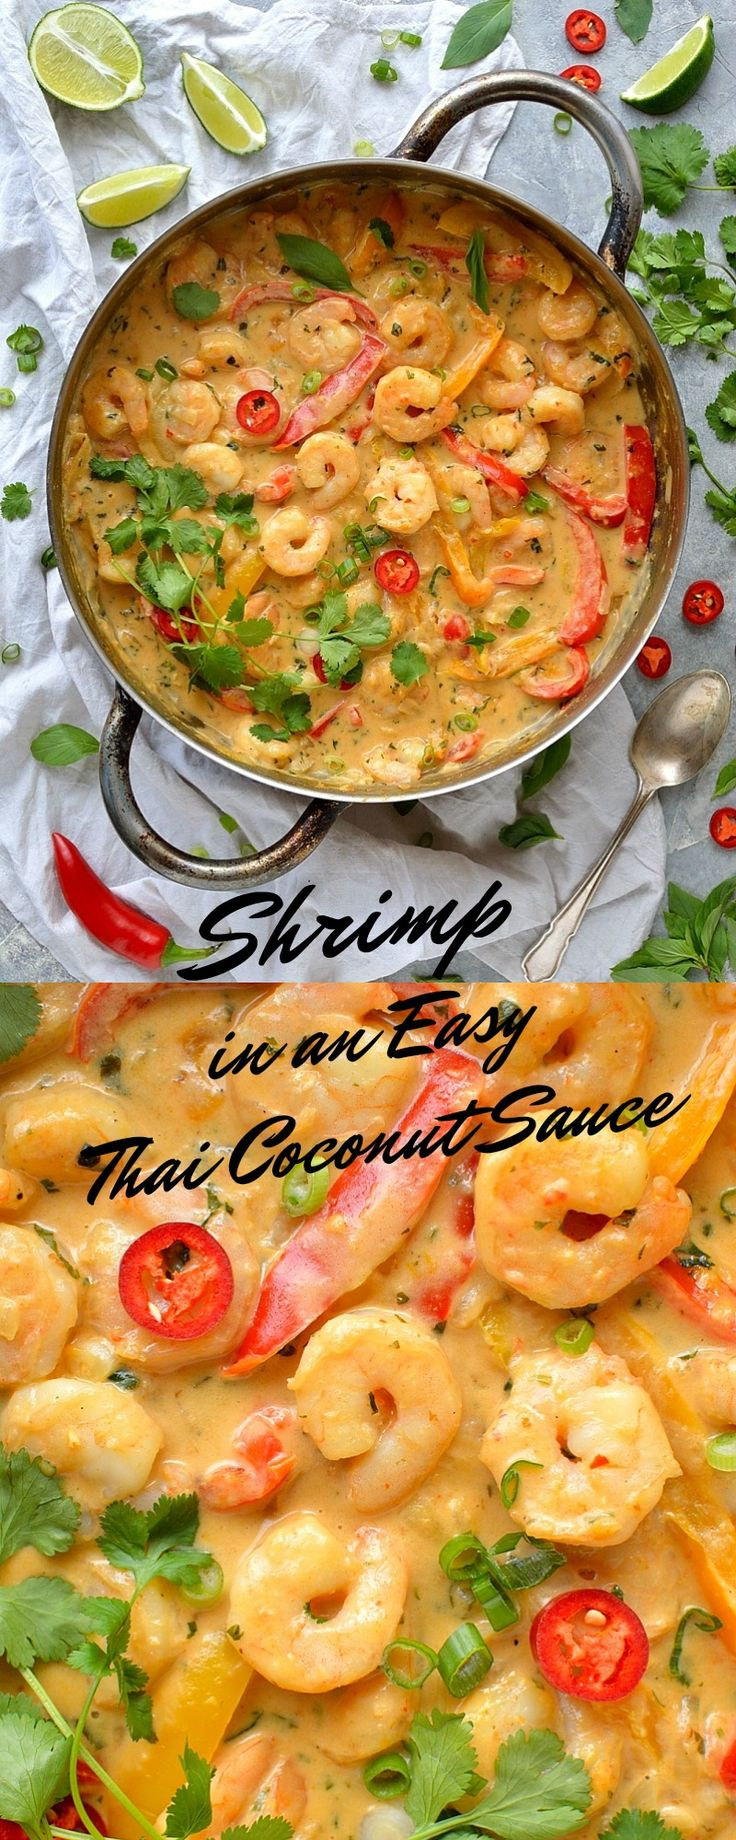 Prawns in an easy Thai coconut sauce - shrimp and peppers in a creamy, flavourful Thai-style coconut sauce.